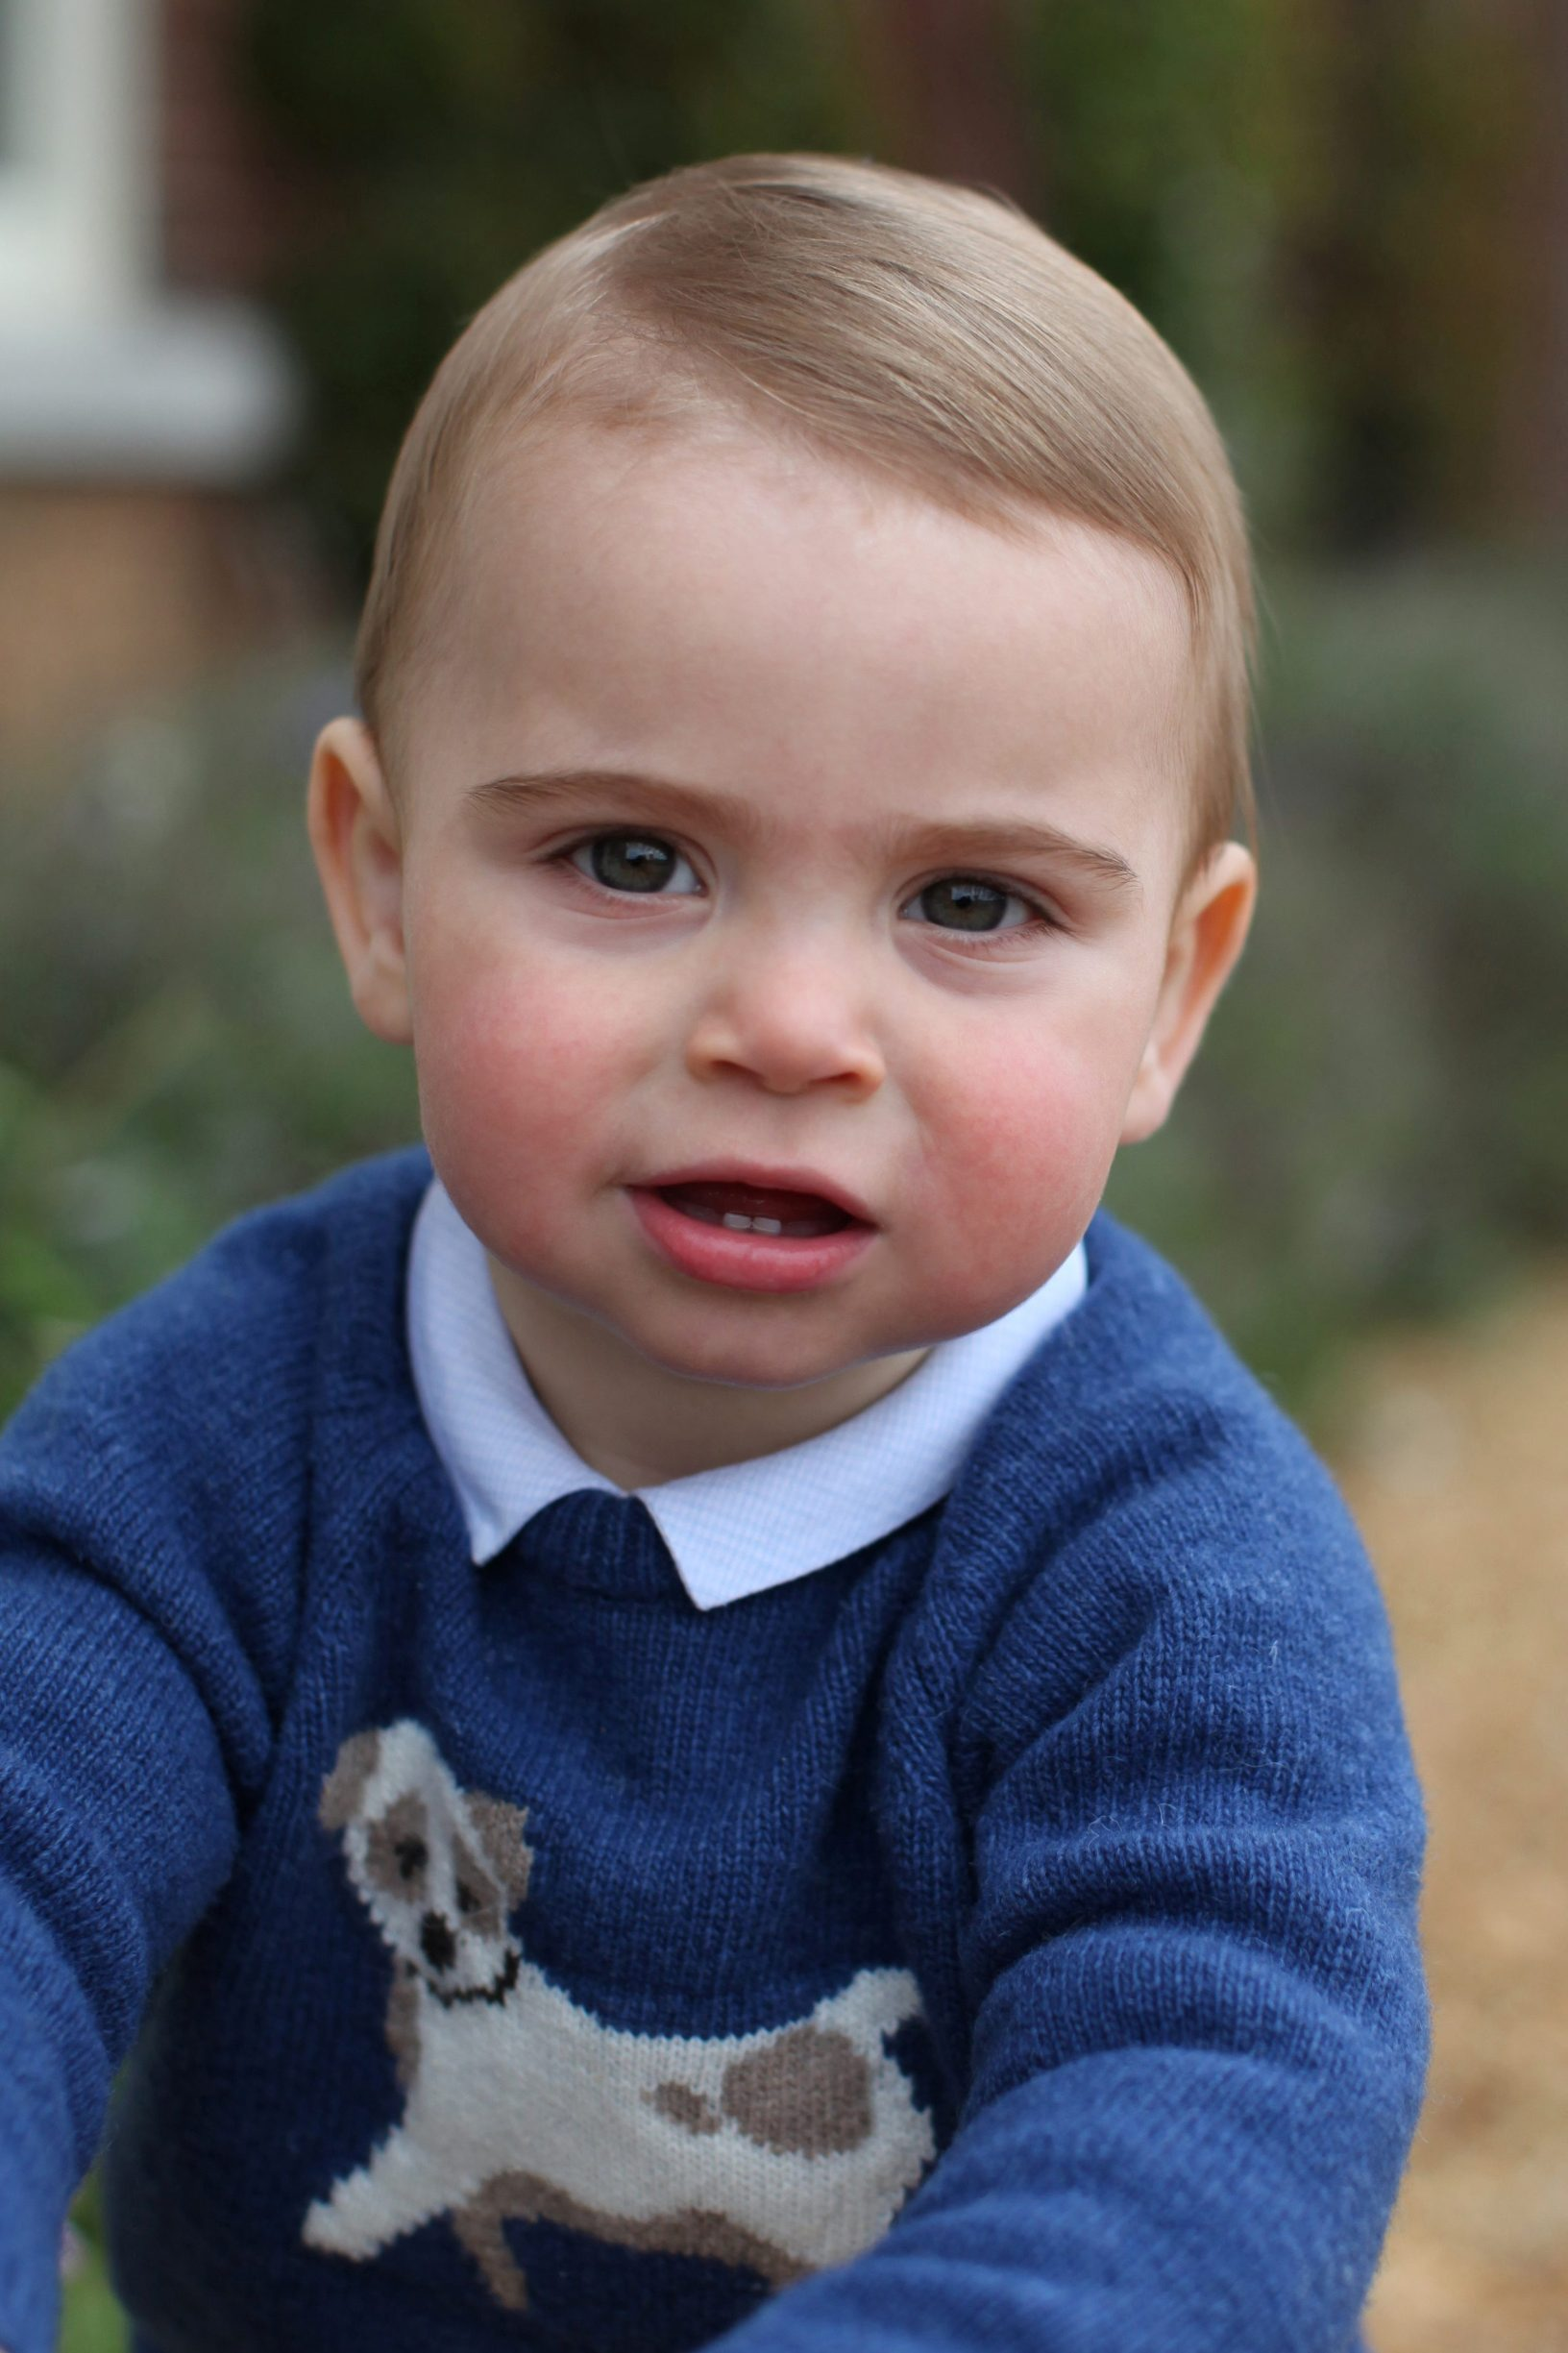 Undated handout photo of Britain's Prince Louis taken by his mother Catherine, Duchess of Cambridge, earlier this month at their home in Norfolk, Britain April 22, 2019. Duchess of Cambridge/Handout via REUTERS    THIS PICTURE IS PROVIDED BY A THIRD PARTY. NEWS EDITORIAL USE ONLY. NO COMMERCIAL USE. NO MERCHANDISING, ADVERTISING, SOUVENIRS, MEMORABILIA or COLOURABLY SIMILAR. NOT FOR USE AFTER 31 DECEMBER, 2019 WITHOUT PRIOR PERMISSION FROMKENSINGTONPALACE. NO CHARGE SHOULD BE MADE FOR THE SUPPLY, RELEASE OR PUBLICATION OF THE PHOTOGRAPH. THE PHOTOGRAPH MUST NOT BE DIGITALLY ENHANCED, MANIPULATED OR MODIFIED IN ANY MANNER OR FORM AND MUST INCLUDE ALL OF THE INDIVIDUALS IN THE PHOTOGRAPH WHEN PUBLISHED. MANDATORY CREDIT: The Duchess of Cambridge